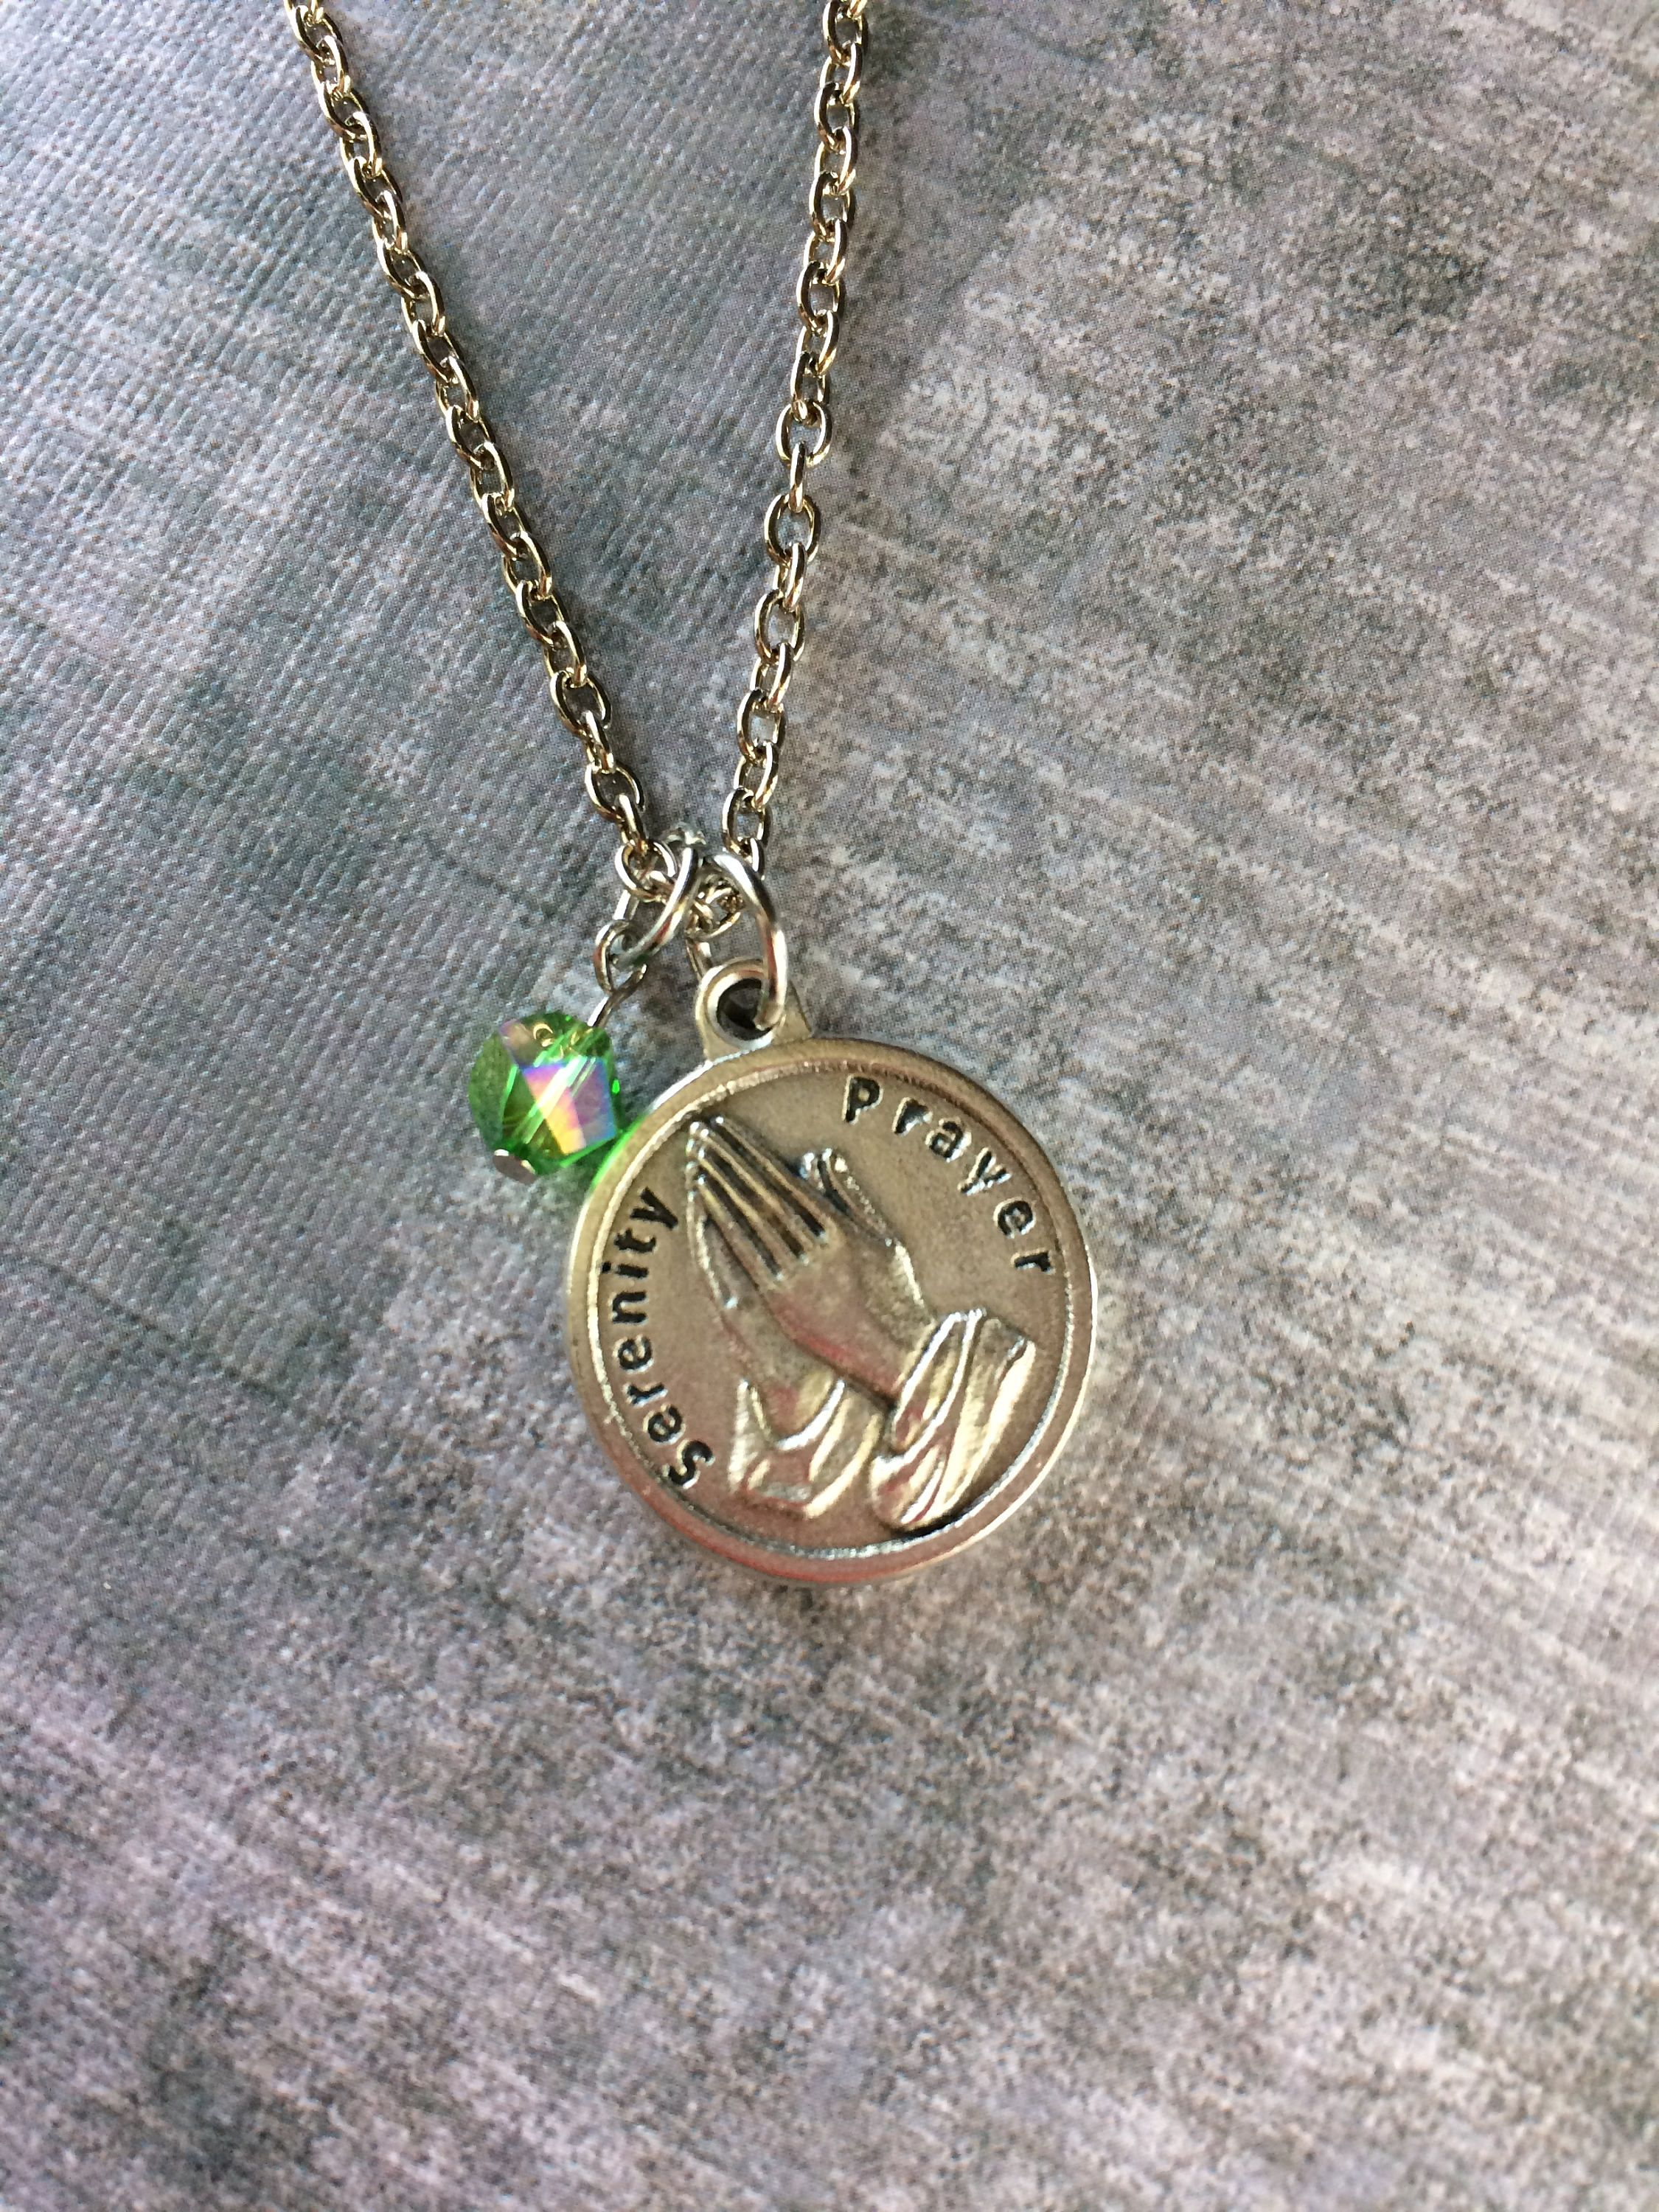 necklace pendant steel prayer stainless serenity disc